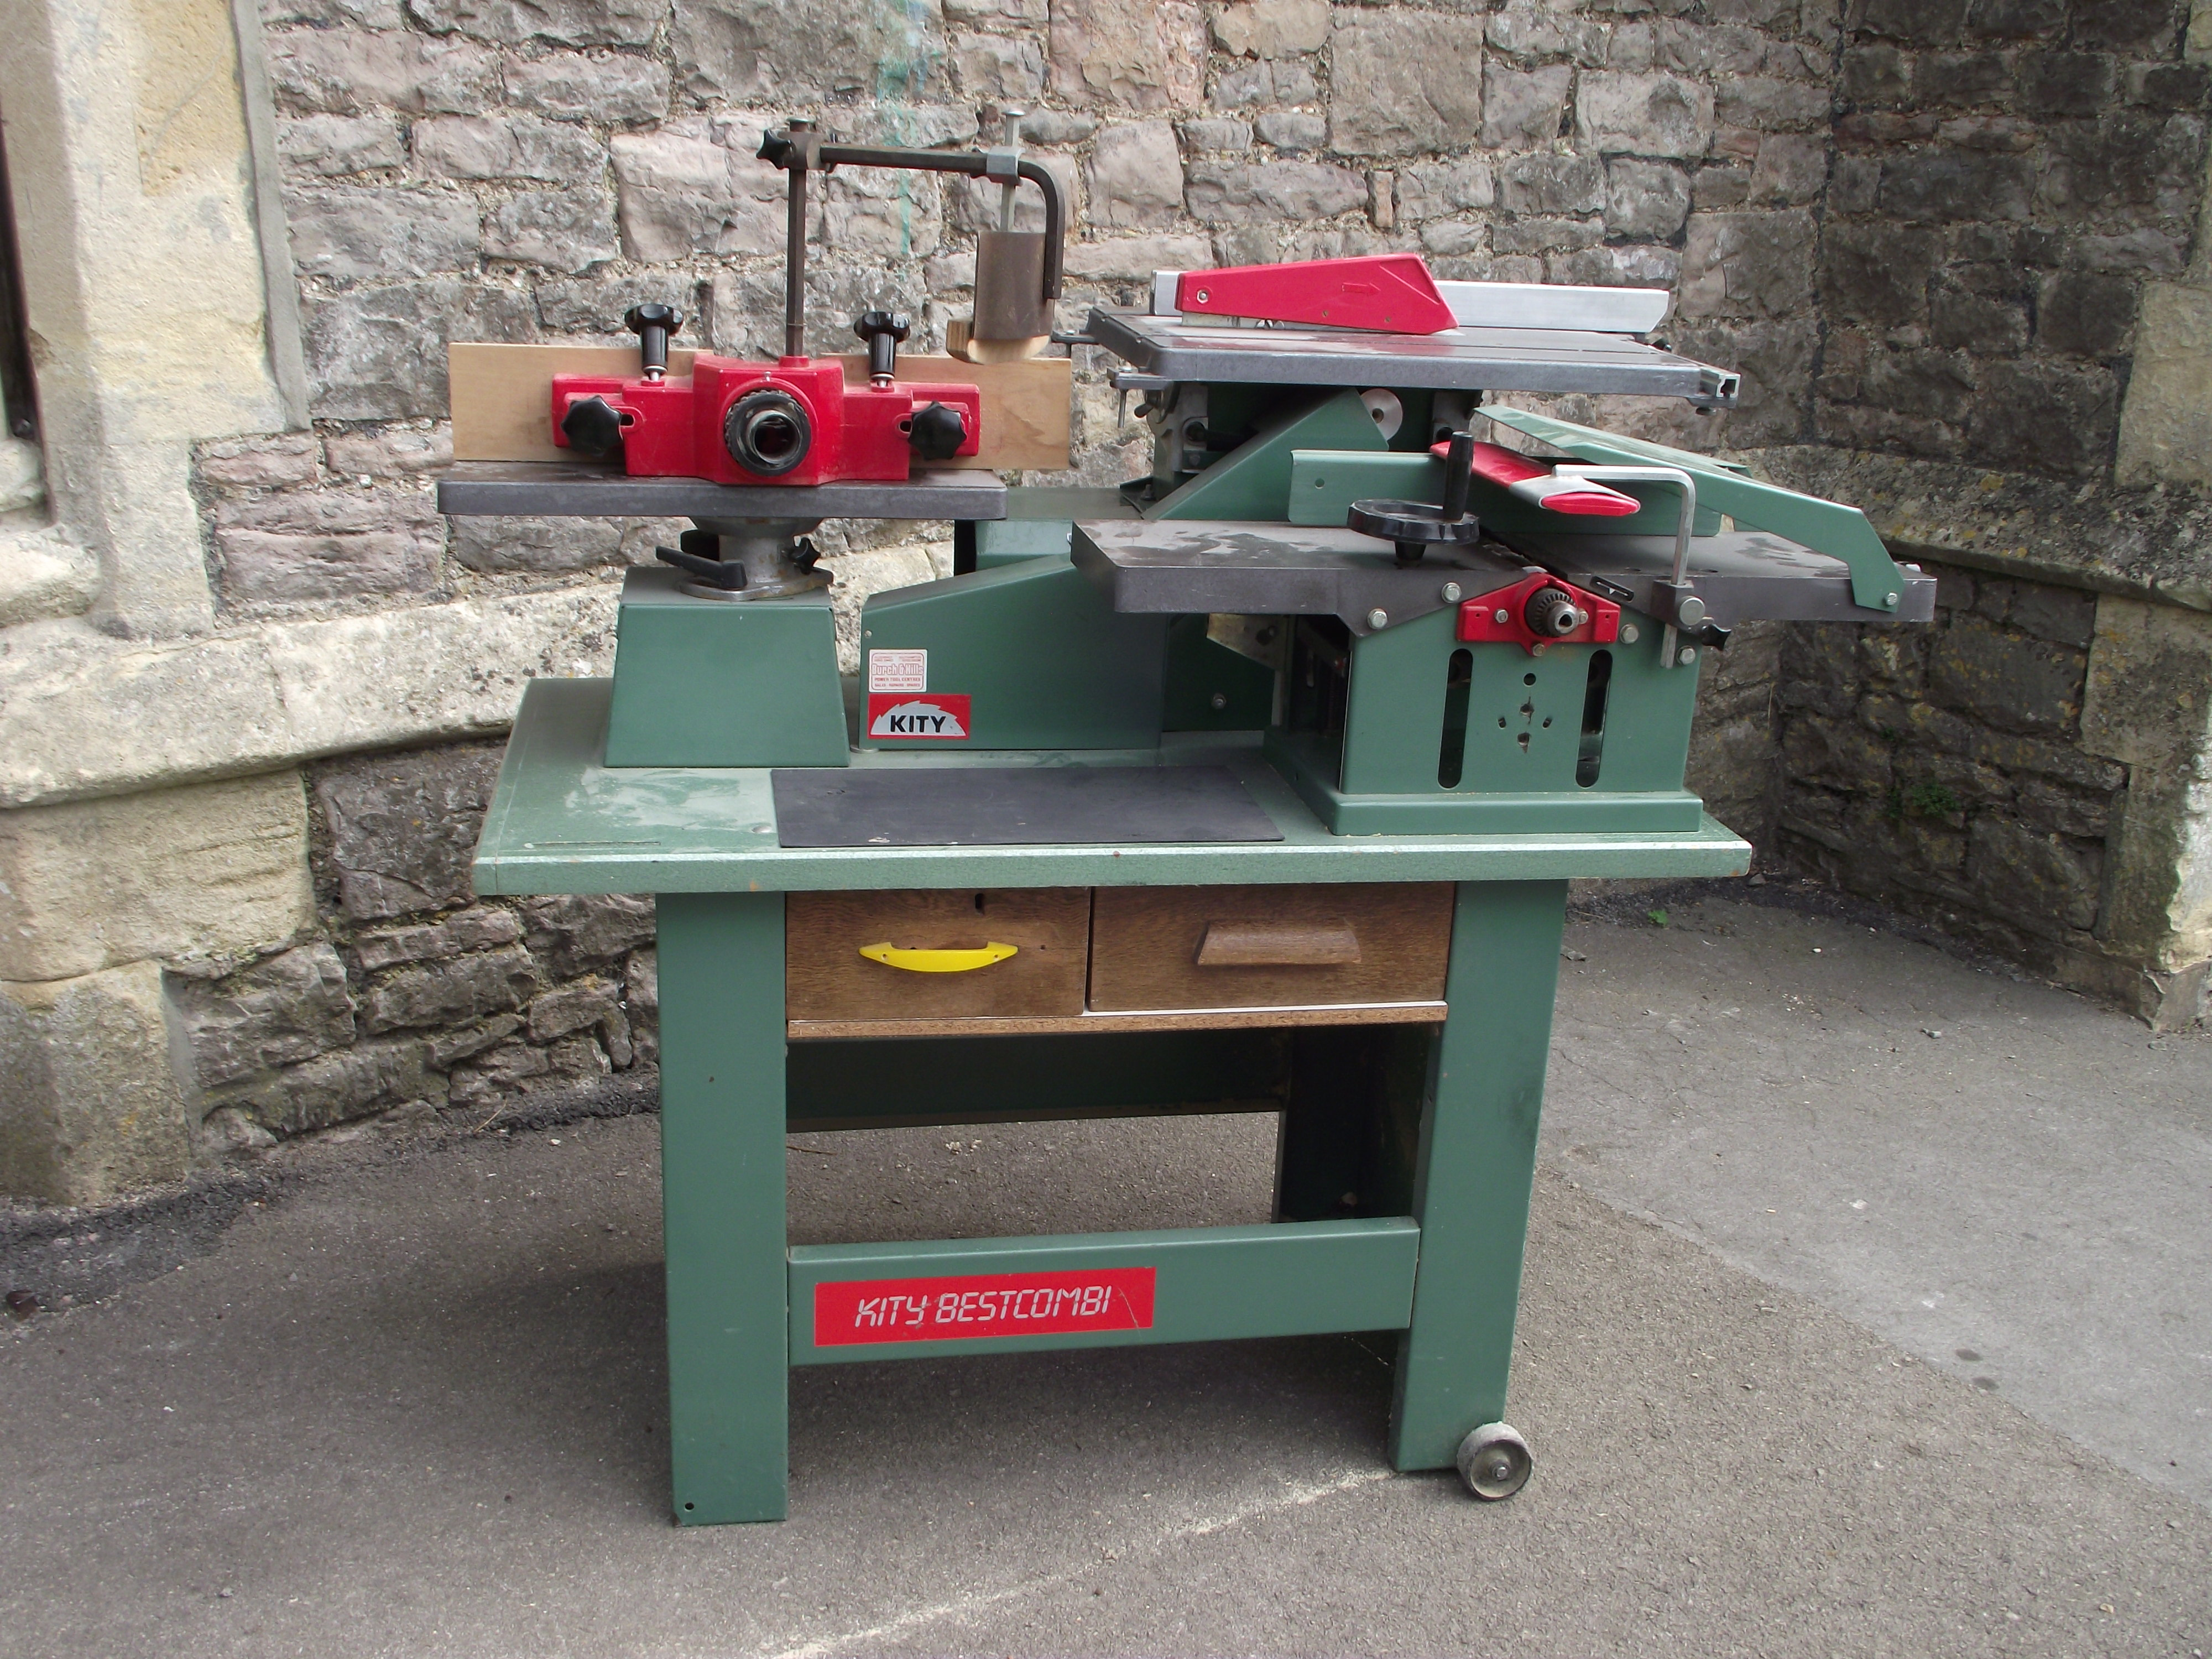 A contemporary workshop multi woodworking machine, Kity BestCombi, with spindle moulder, morticer